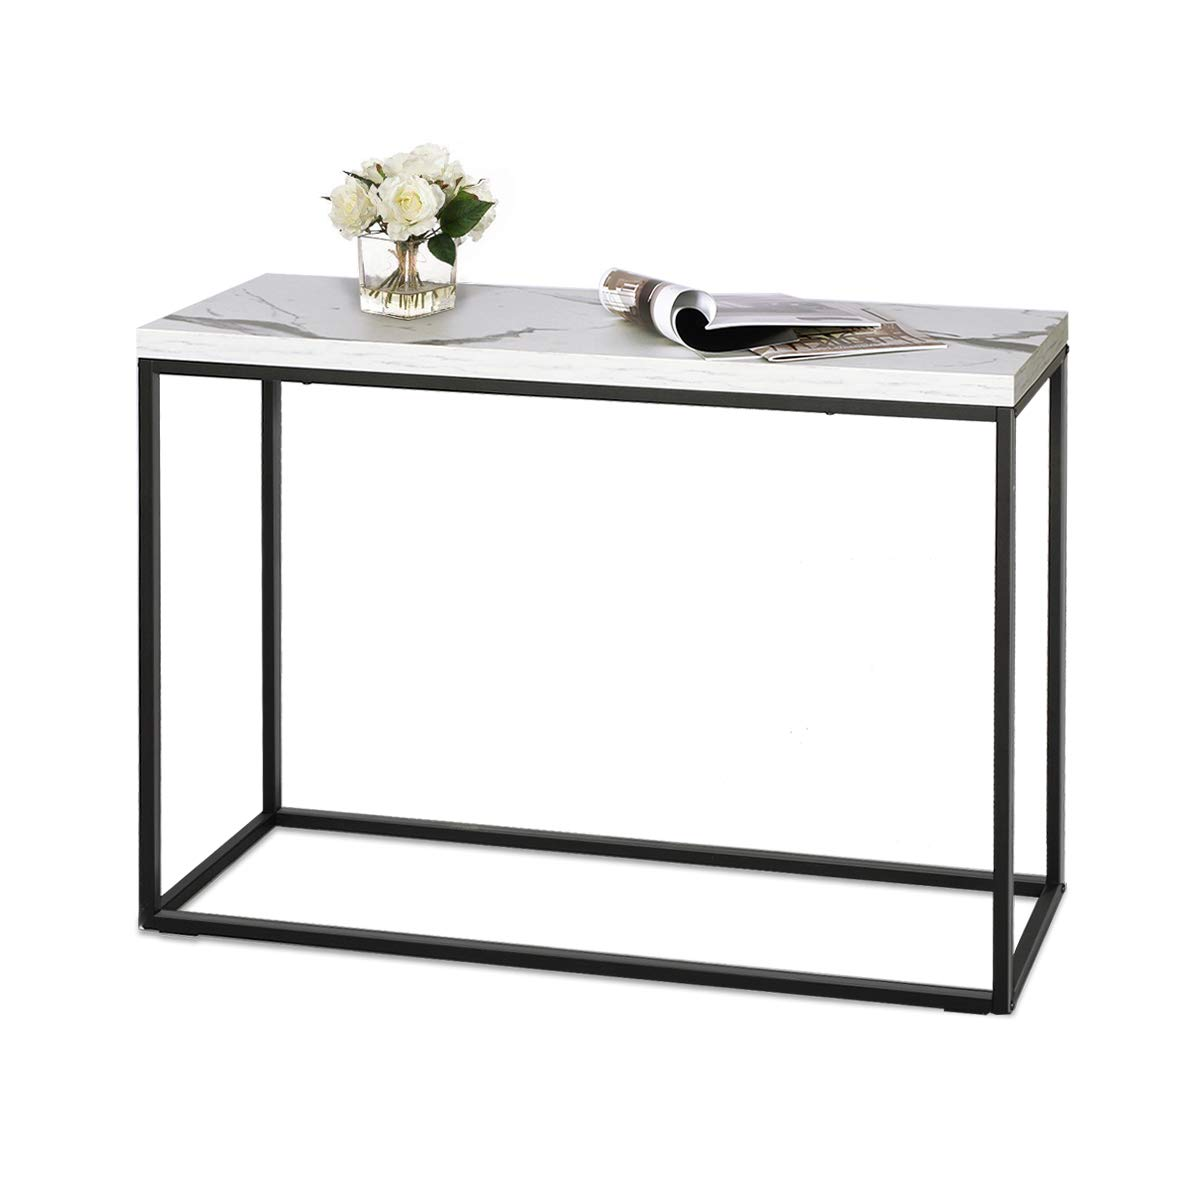 WLIVE Modern Console Table for Entryway, Faux Marble Print Top Narrow Foyer Hall Table with Metal Frame